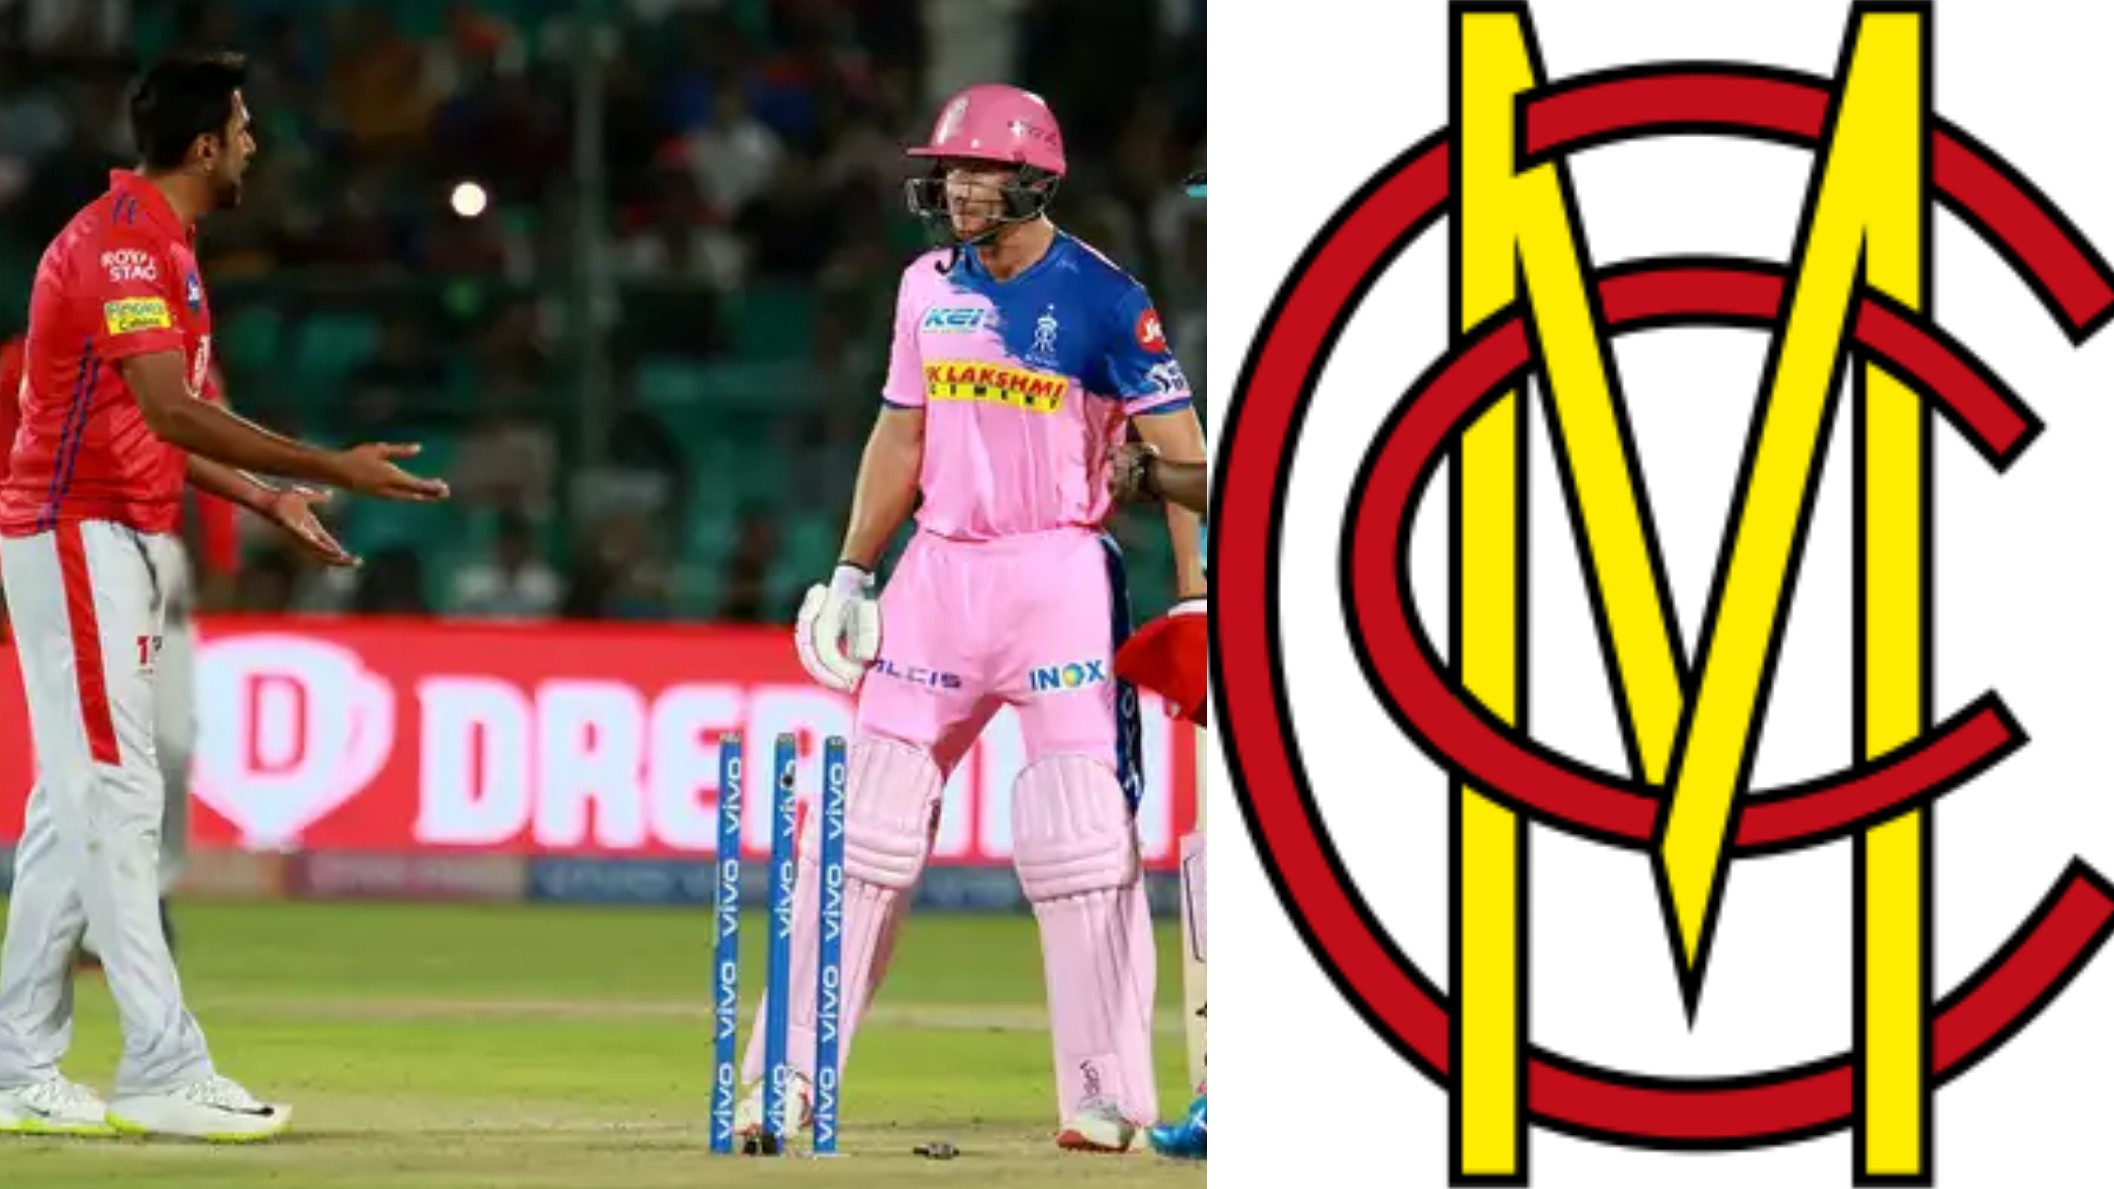 IPL 2019: MCC terms Ashwin's Mankad of Buttler against the spirit of cricket